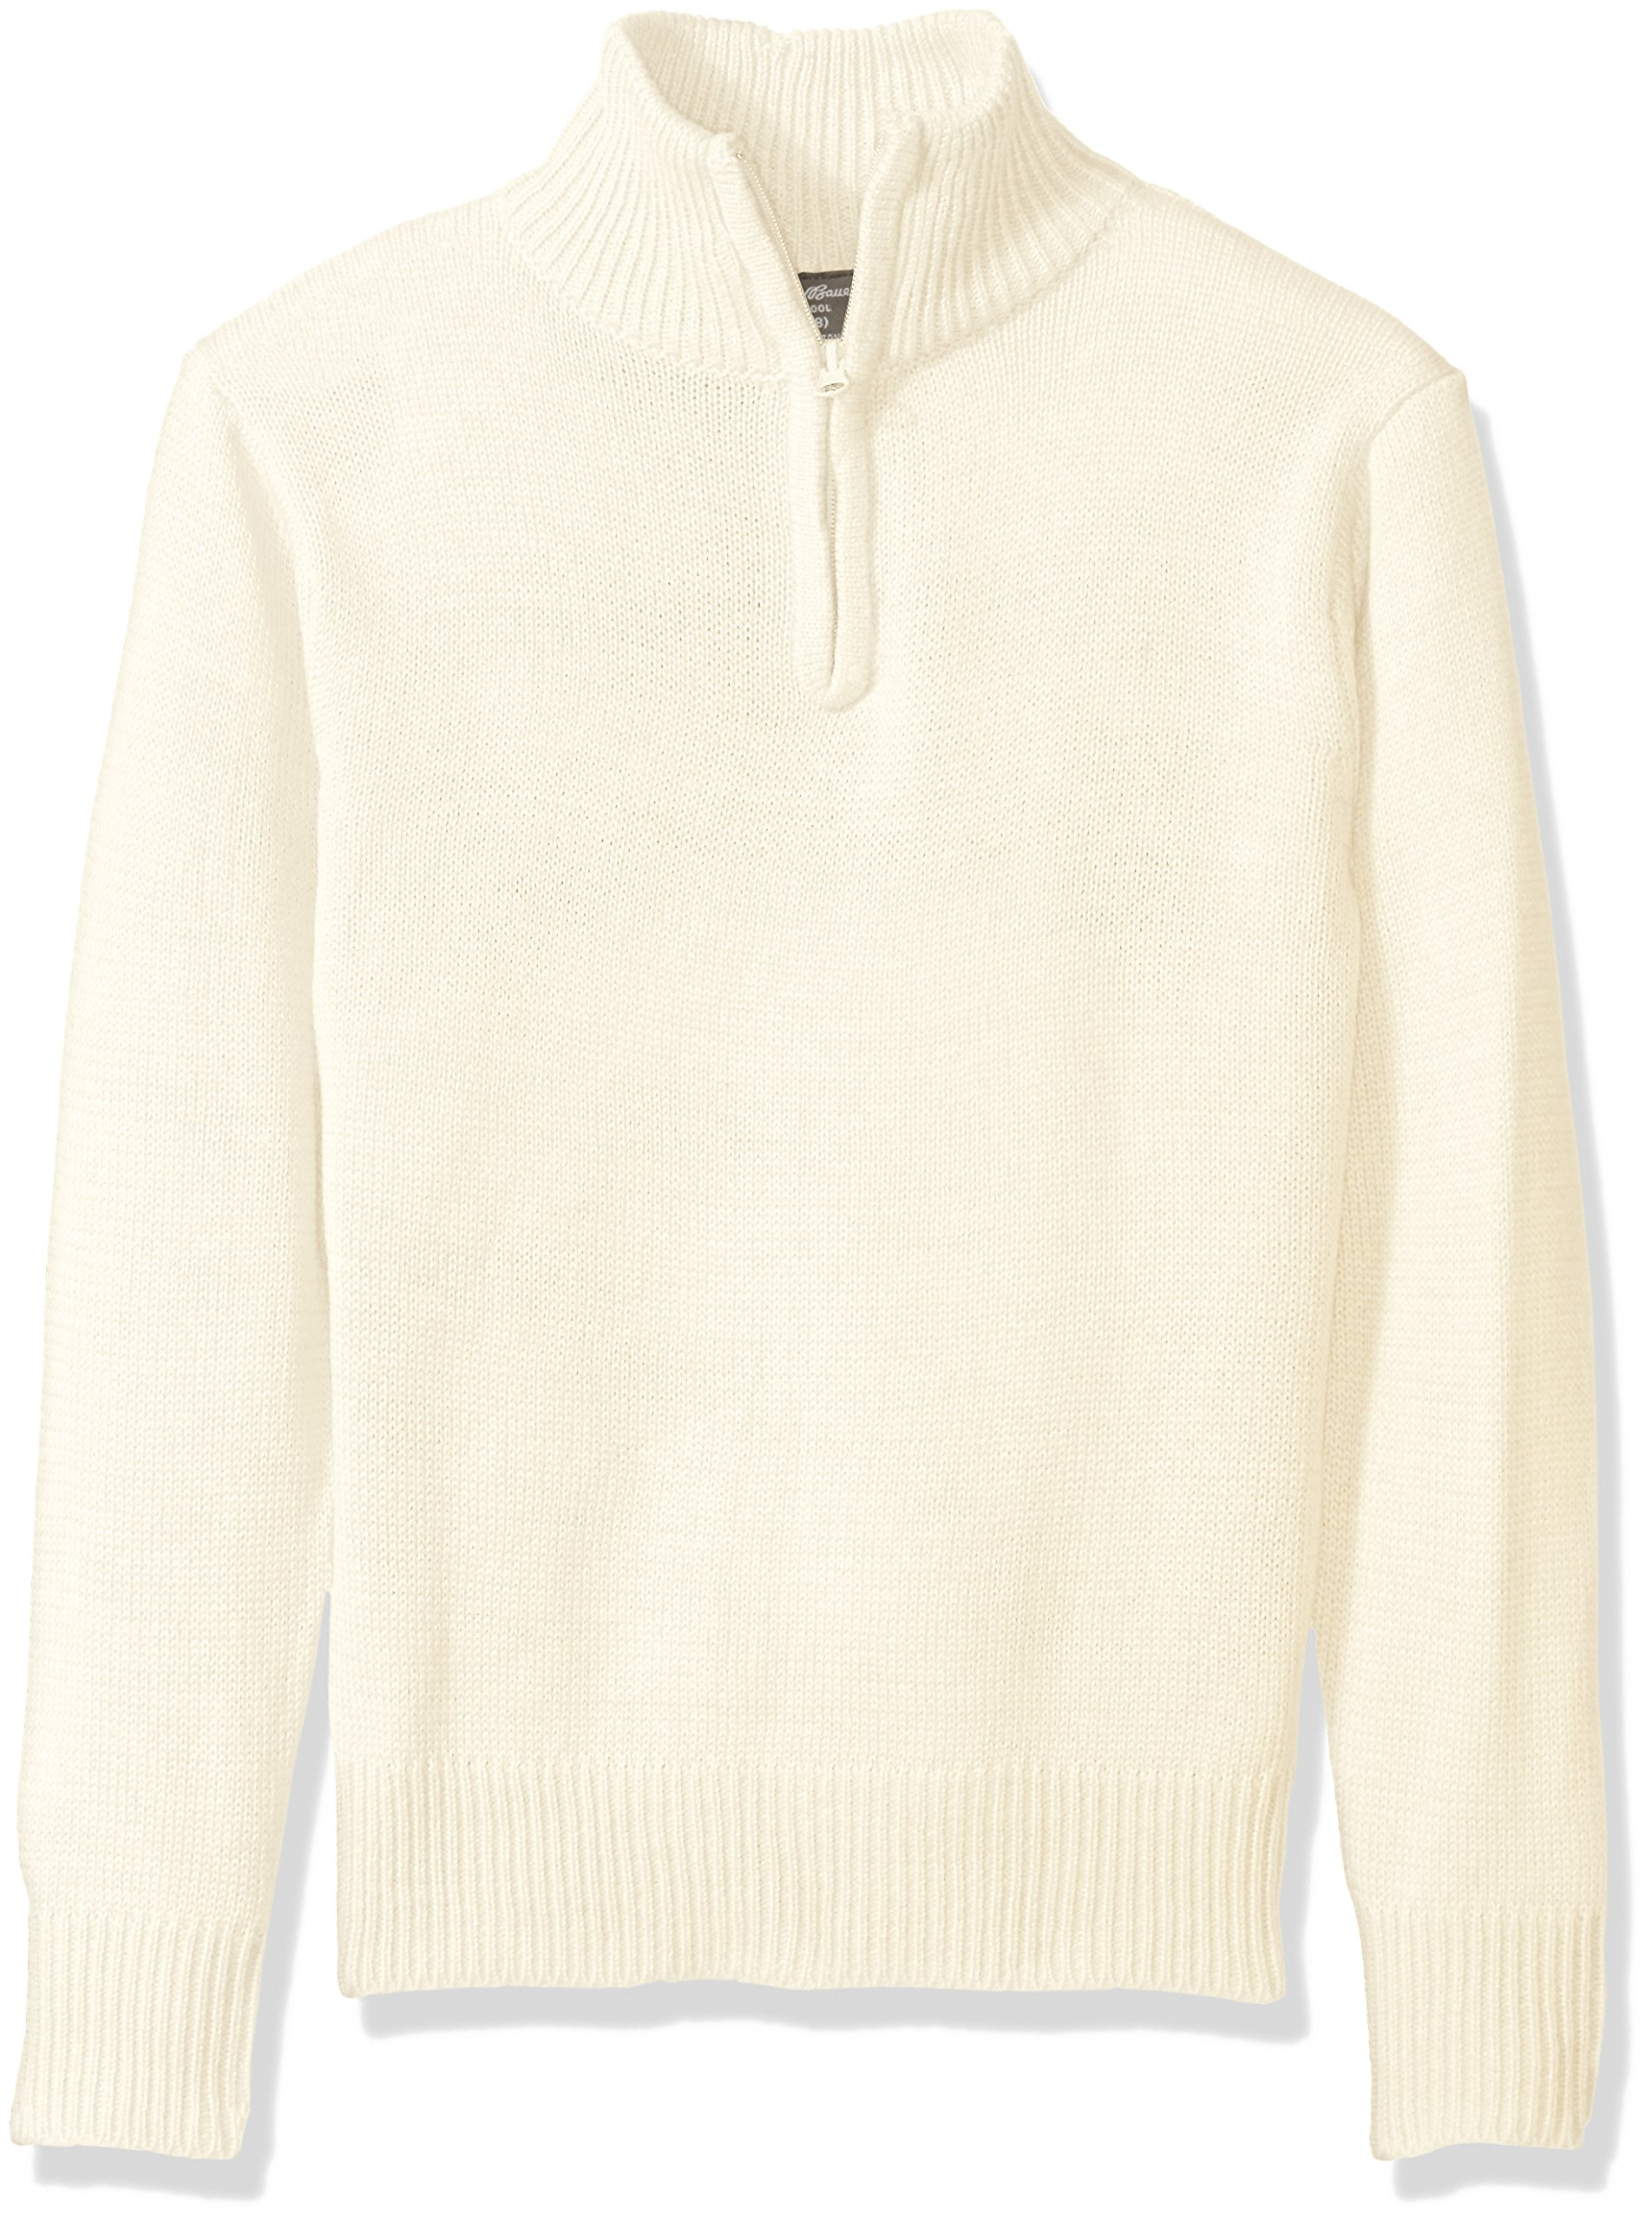 Eddie Bauer Boys' Sweater (More Styles Available), Classic Ivory, 14/16